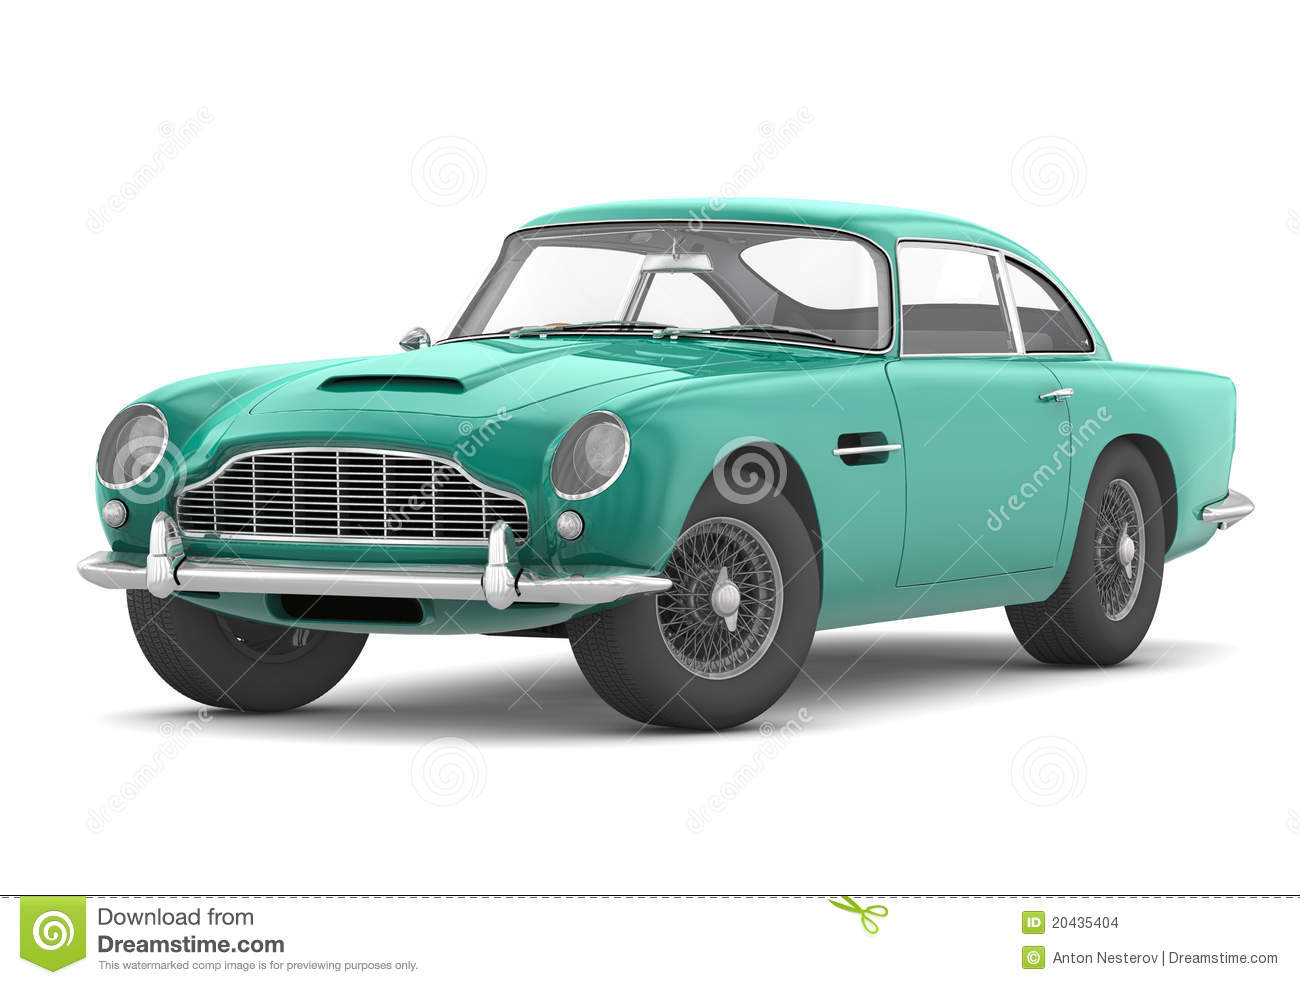 Aston Martin DB5 Vantage (1964) Stock Images.